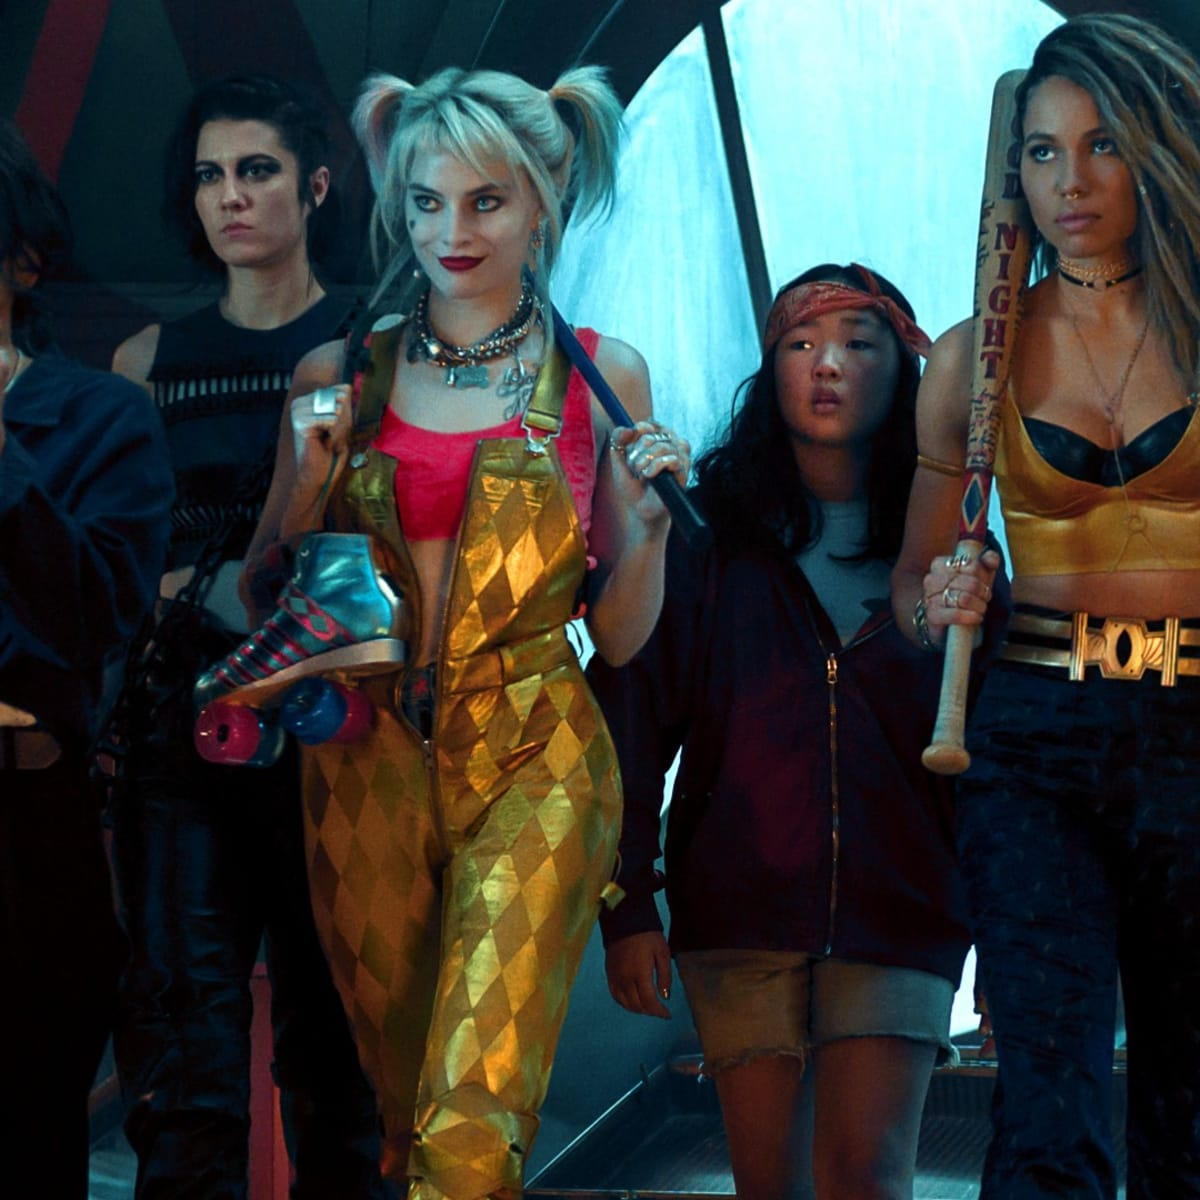 The Fashion Influences Behind The Birds Of Prey Costumes Include Jeremy Scott And Vogue Editorials Fashionista